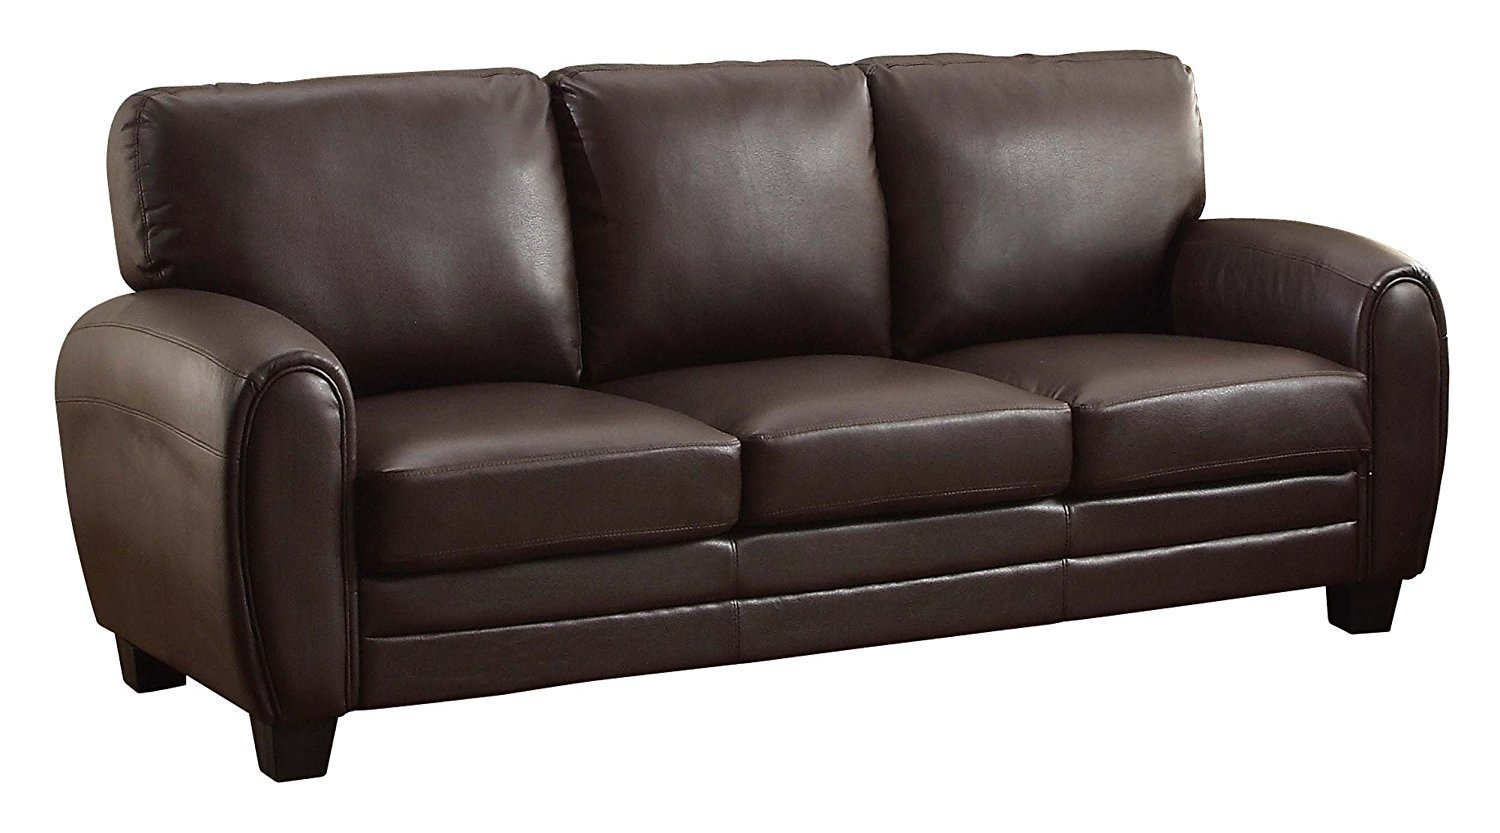 Homelegance 9734db 3 Upholstered Sofa Home Furniture Design